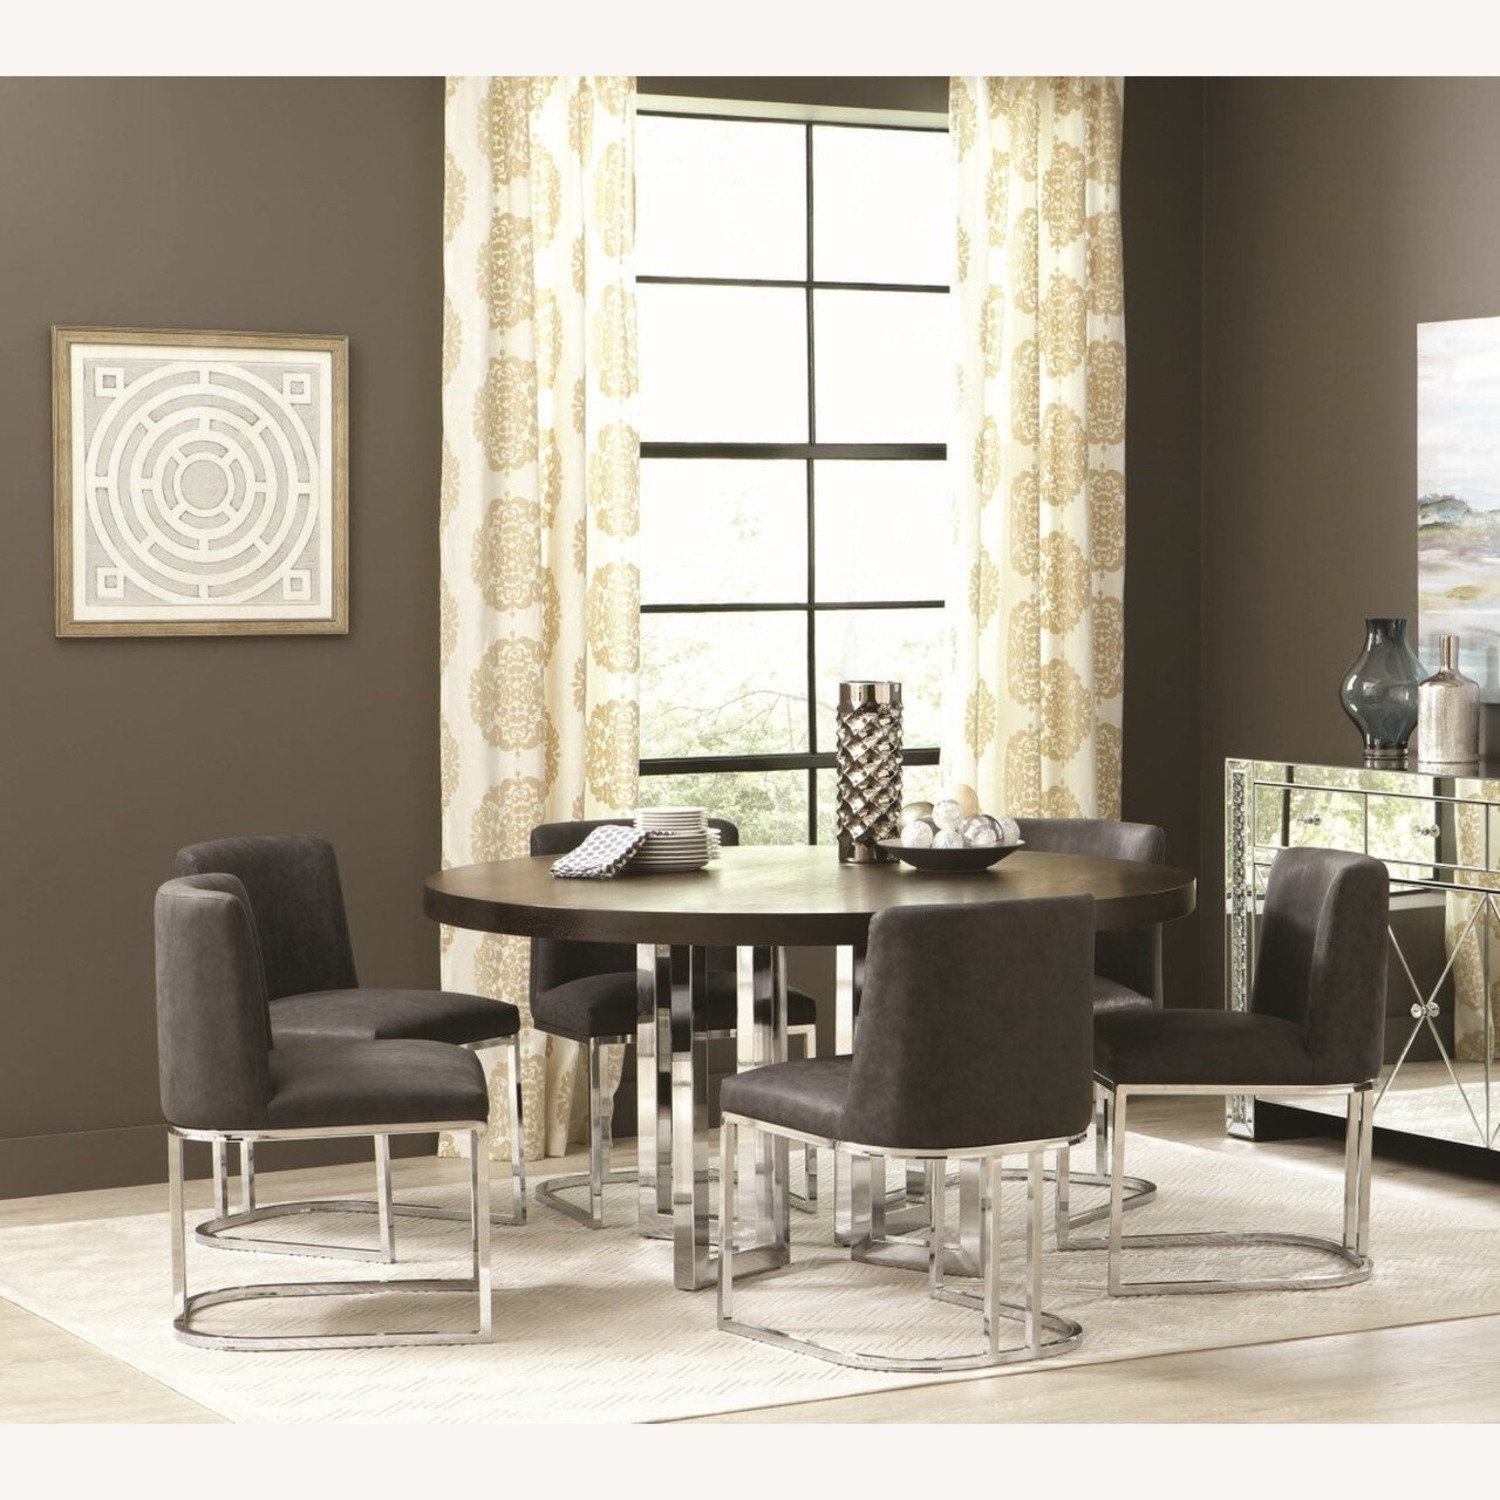 Modern Dining Chair In Black Leatherette - image-3